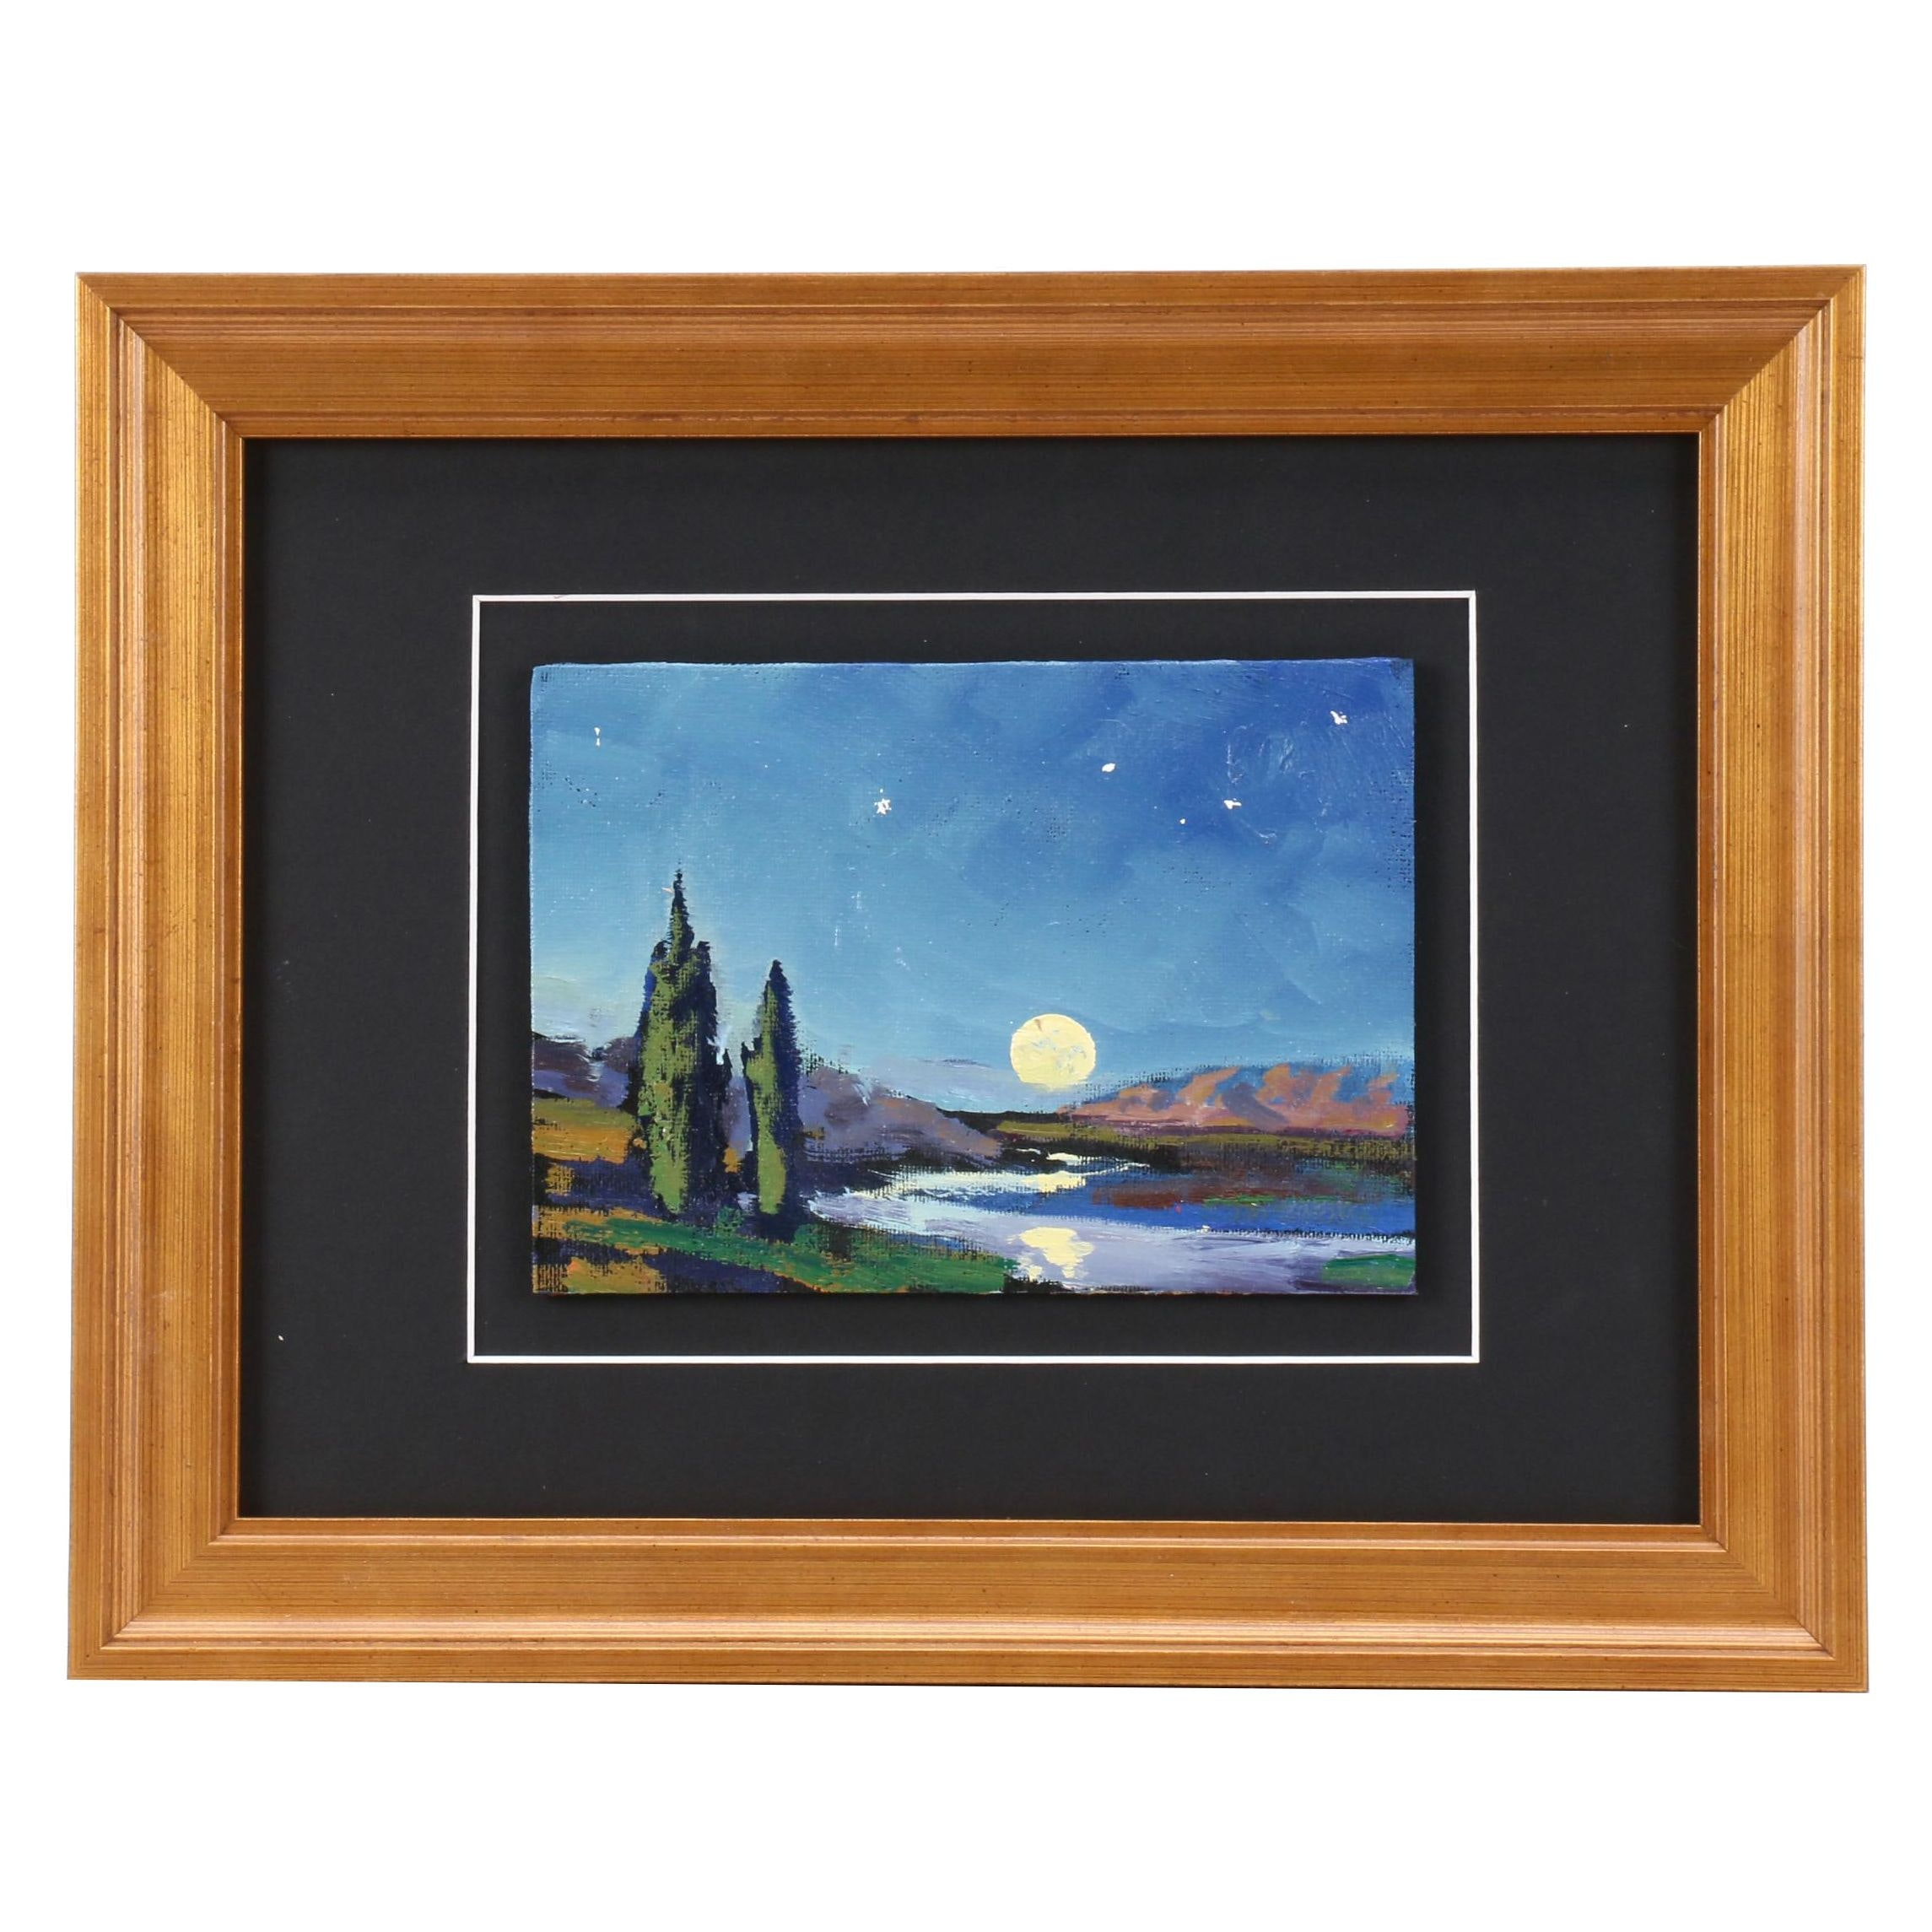 William Hawkins Oil Painting of Moon Over Landscape